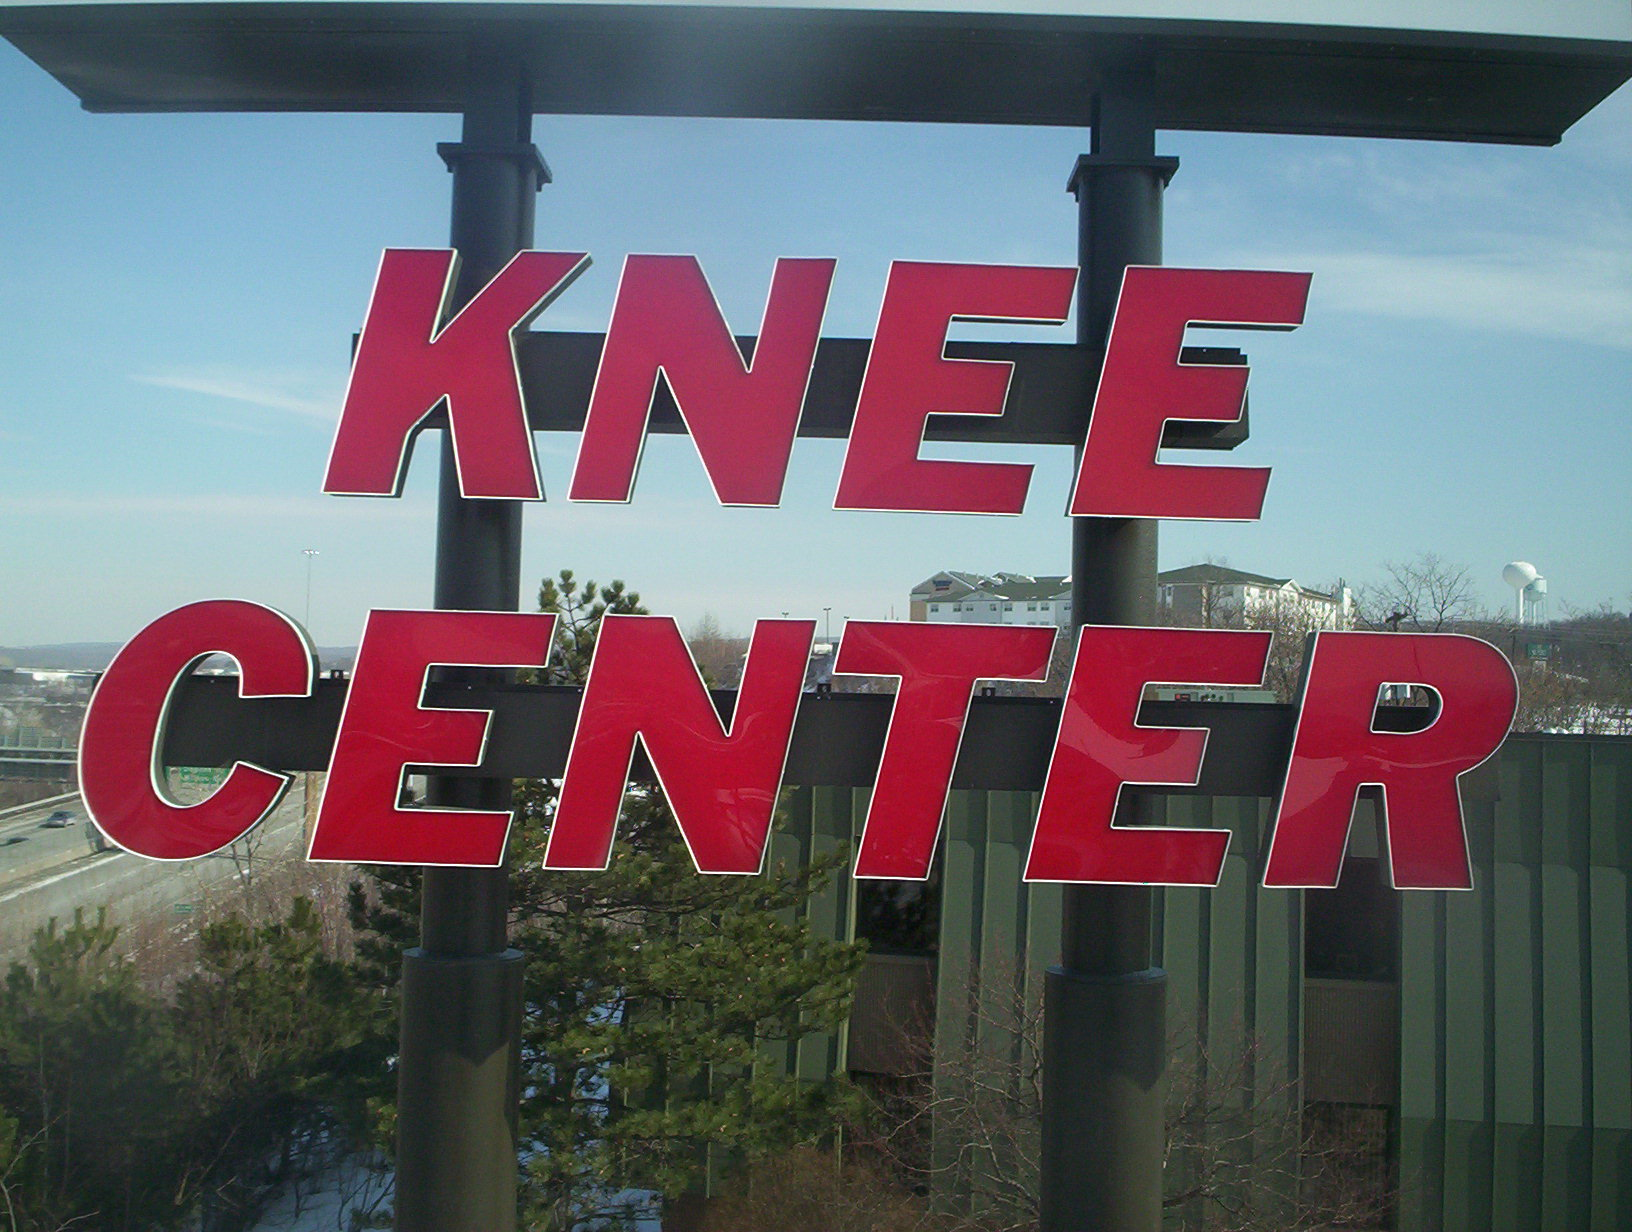 Knee-Center-led-retro-2-18-15-004